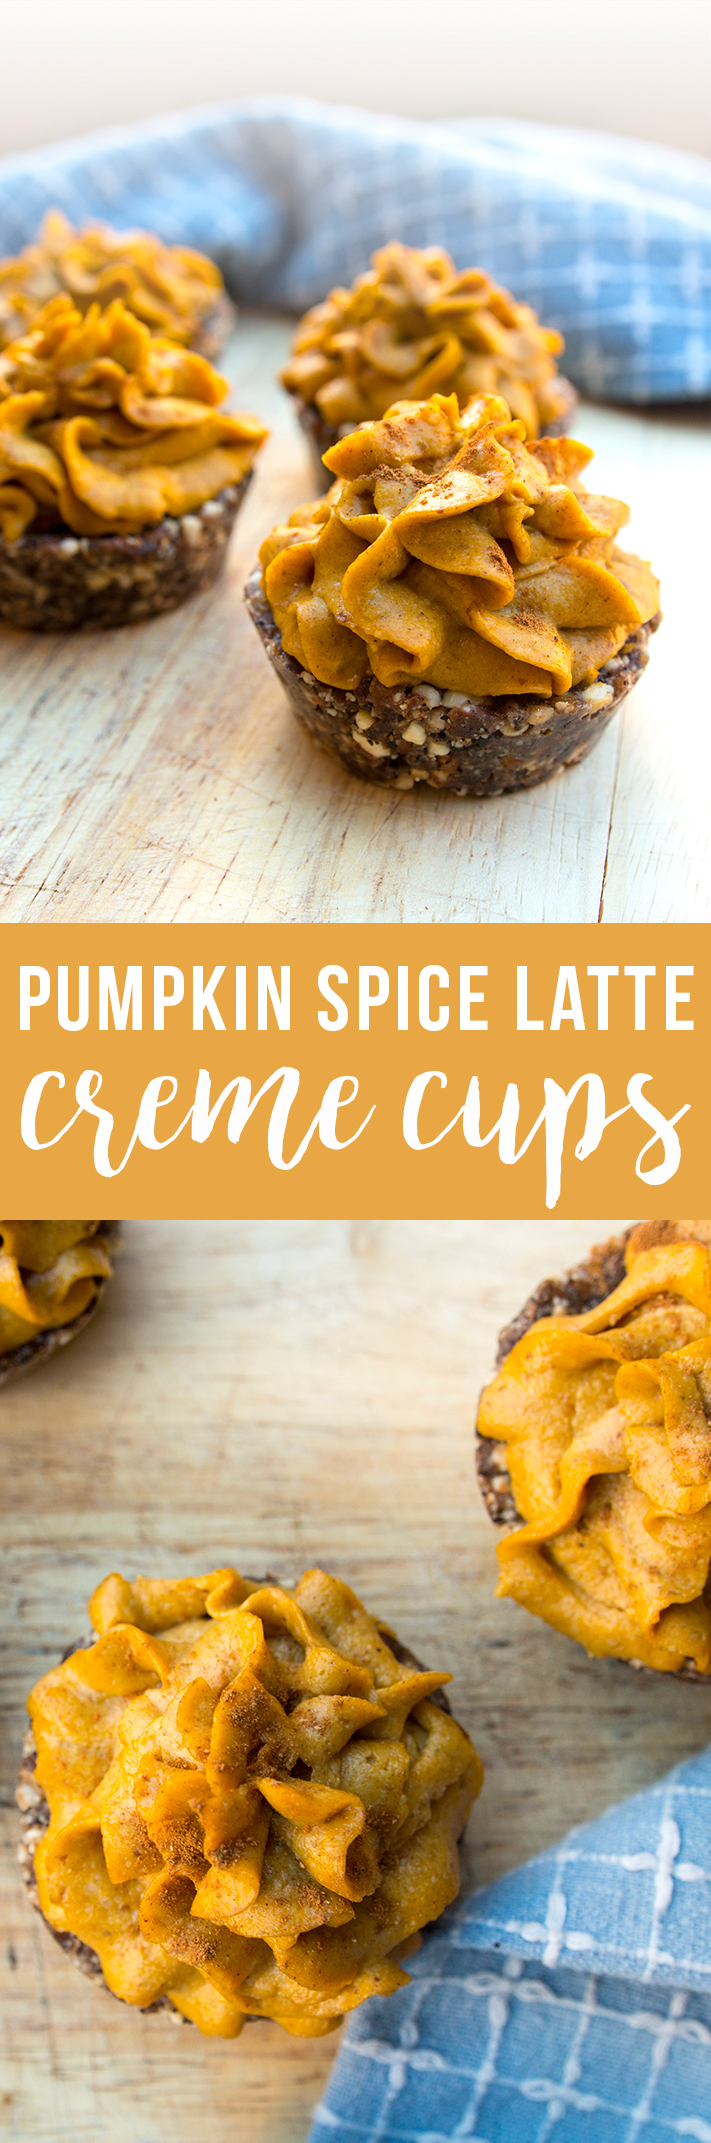 Pumpkin Spice Latte Creme Cups: dairy free, and sweetened only with fruit! Vegan, paleo, healthy... get the recipe!